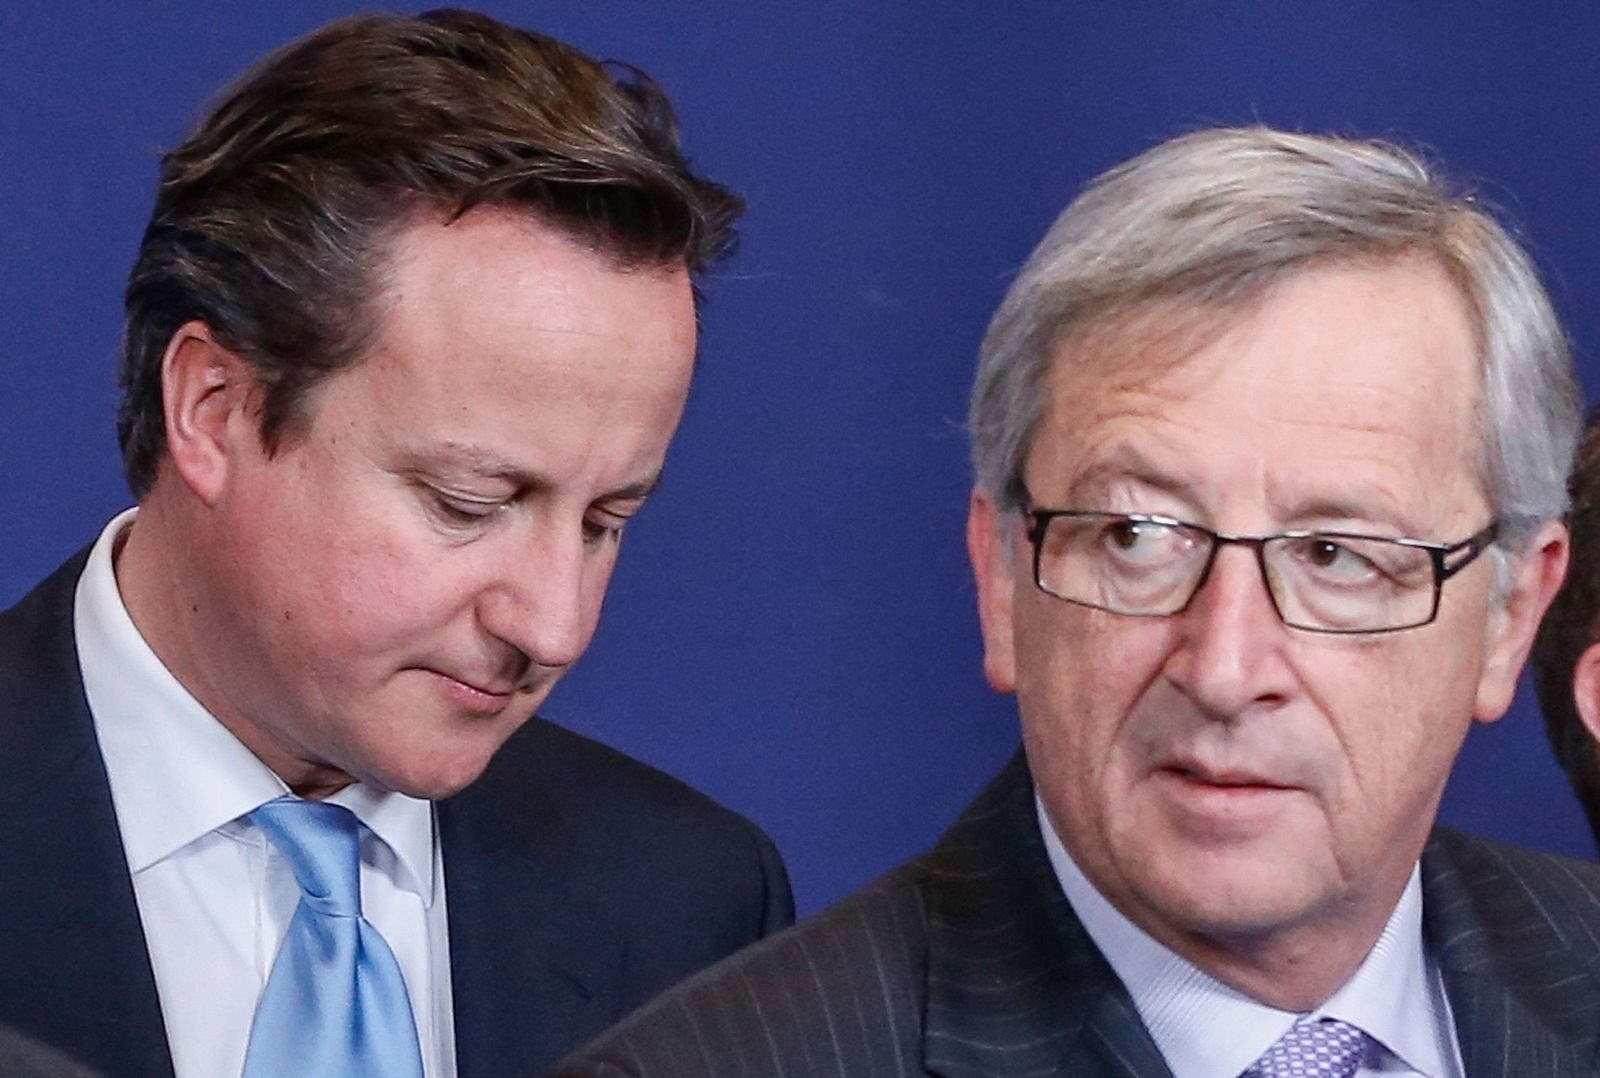 David Cameron / Jean-Claude Juncker